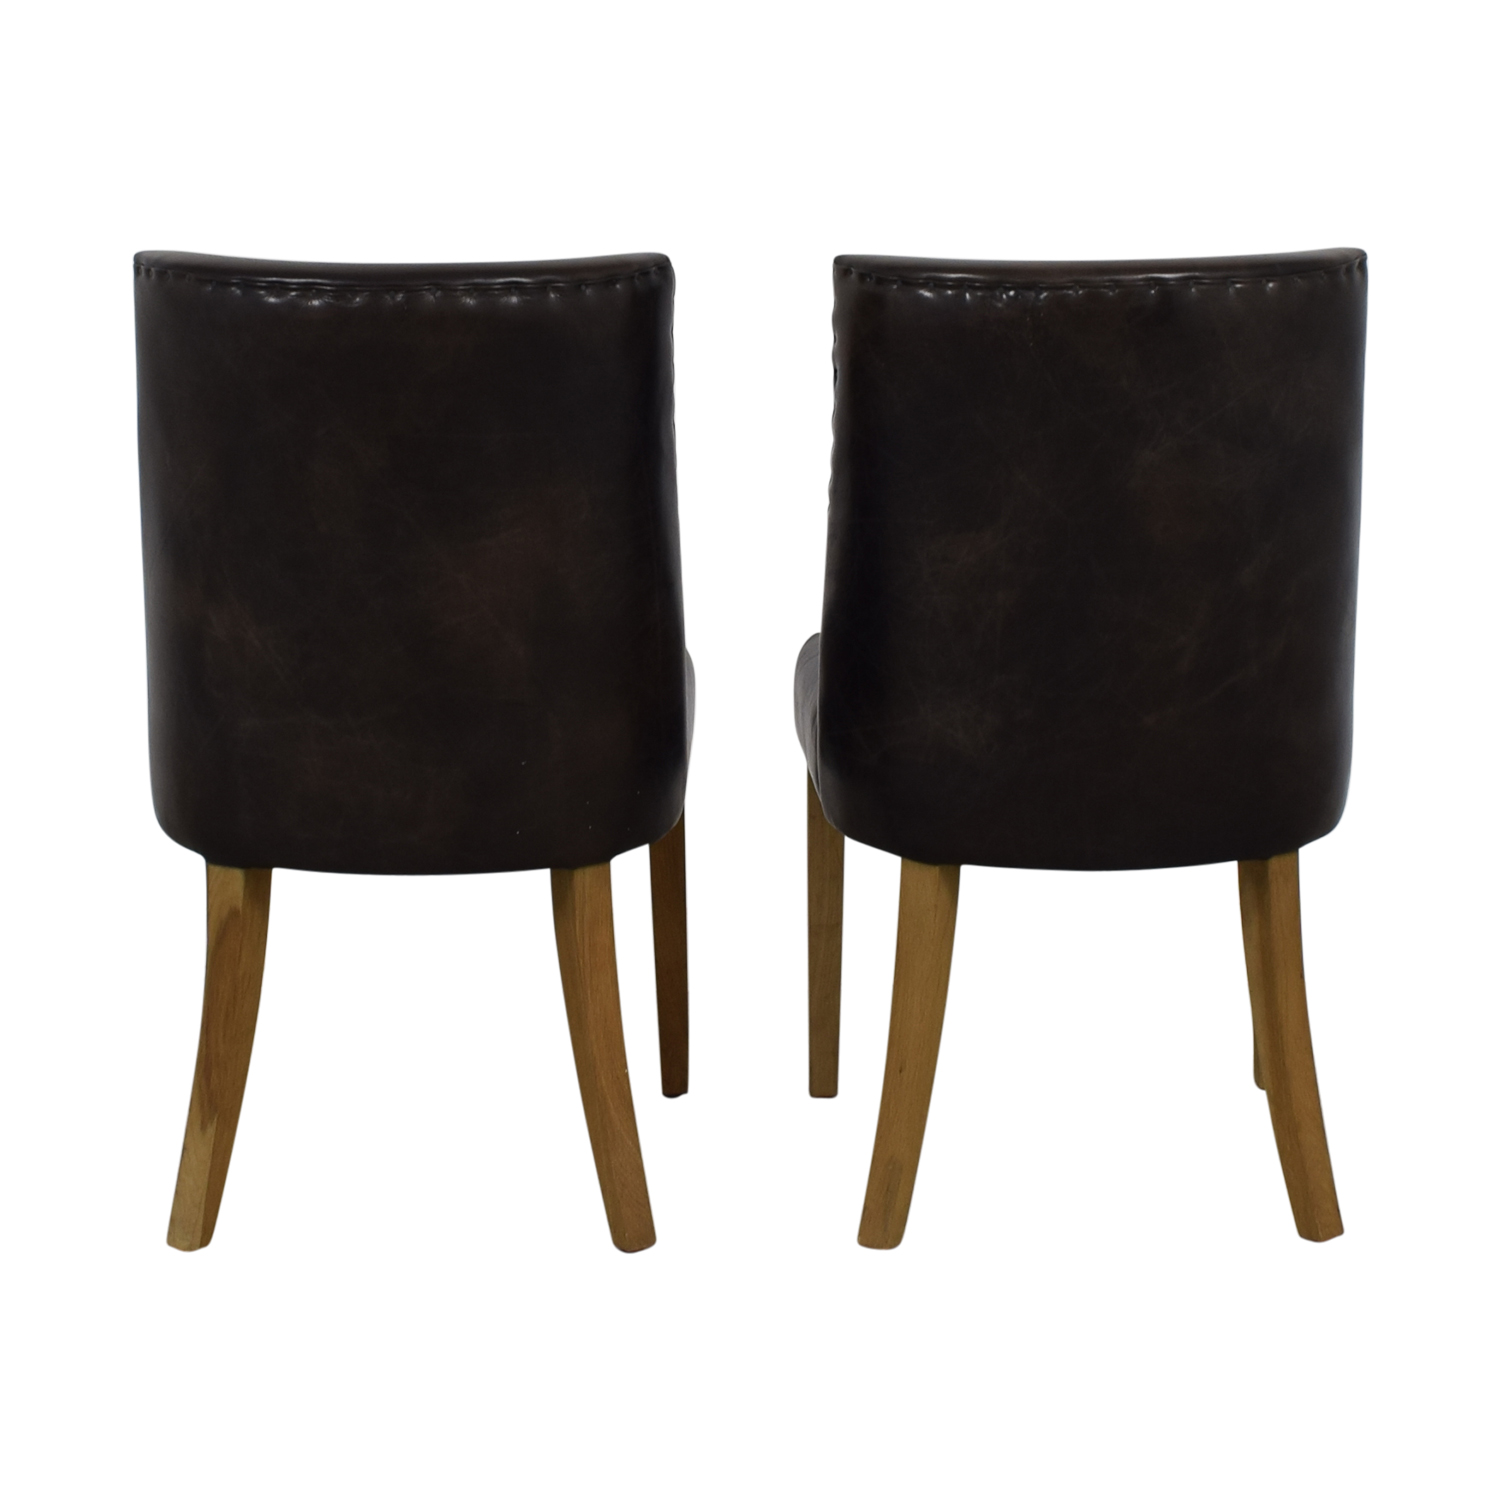 Restoration Hardware Restoration Hardware Brown Leather Dining Chairs nj